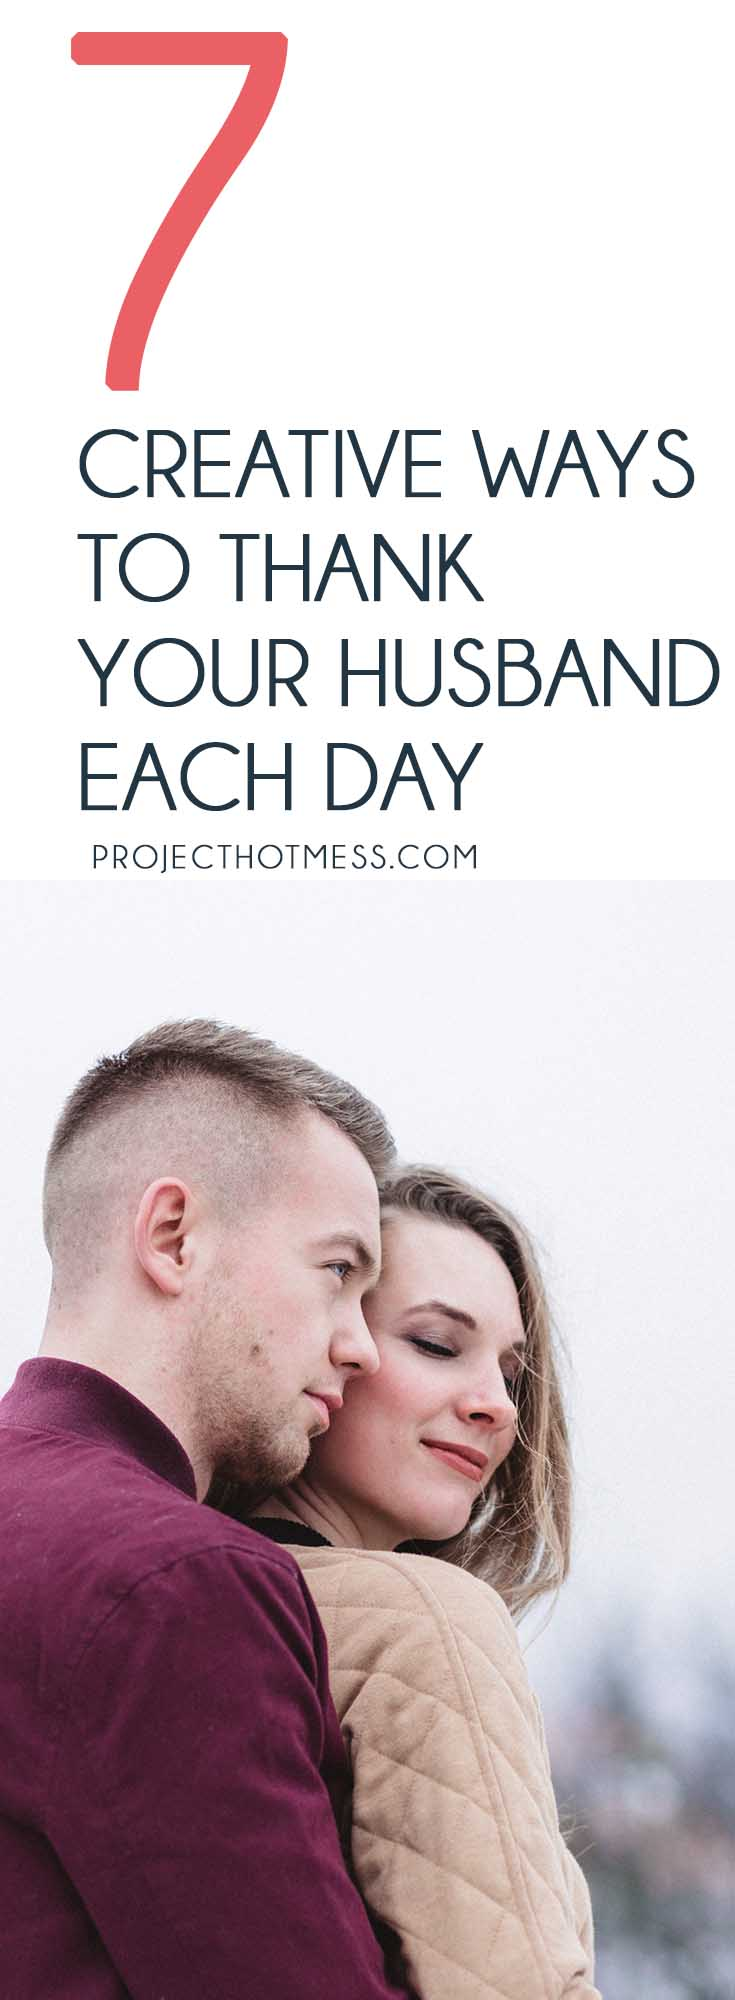 Add a little creativity to the ways you thank your husband each day and challenge him to show thanks too. Watch how the gratitude grows in your relationship. #relationships #marriageadvice #marriagetips #relationshiptips #happymarriage Marriage Advice | Relationship Advice | Happy Marriage | Marriage Tips